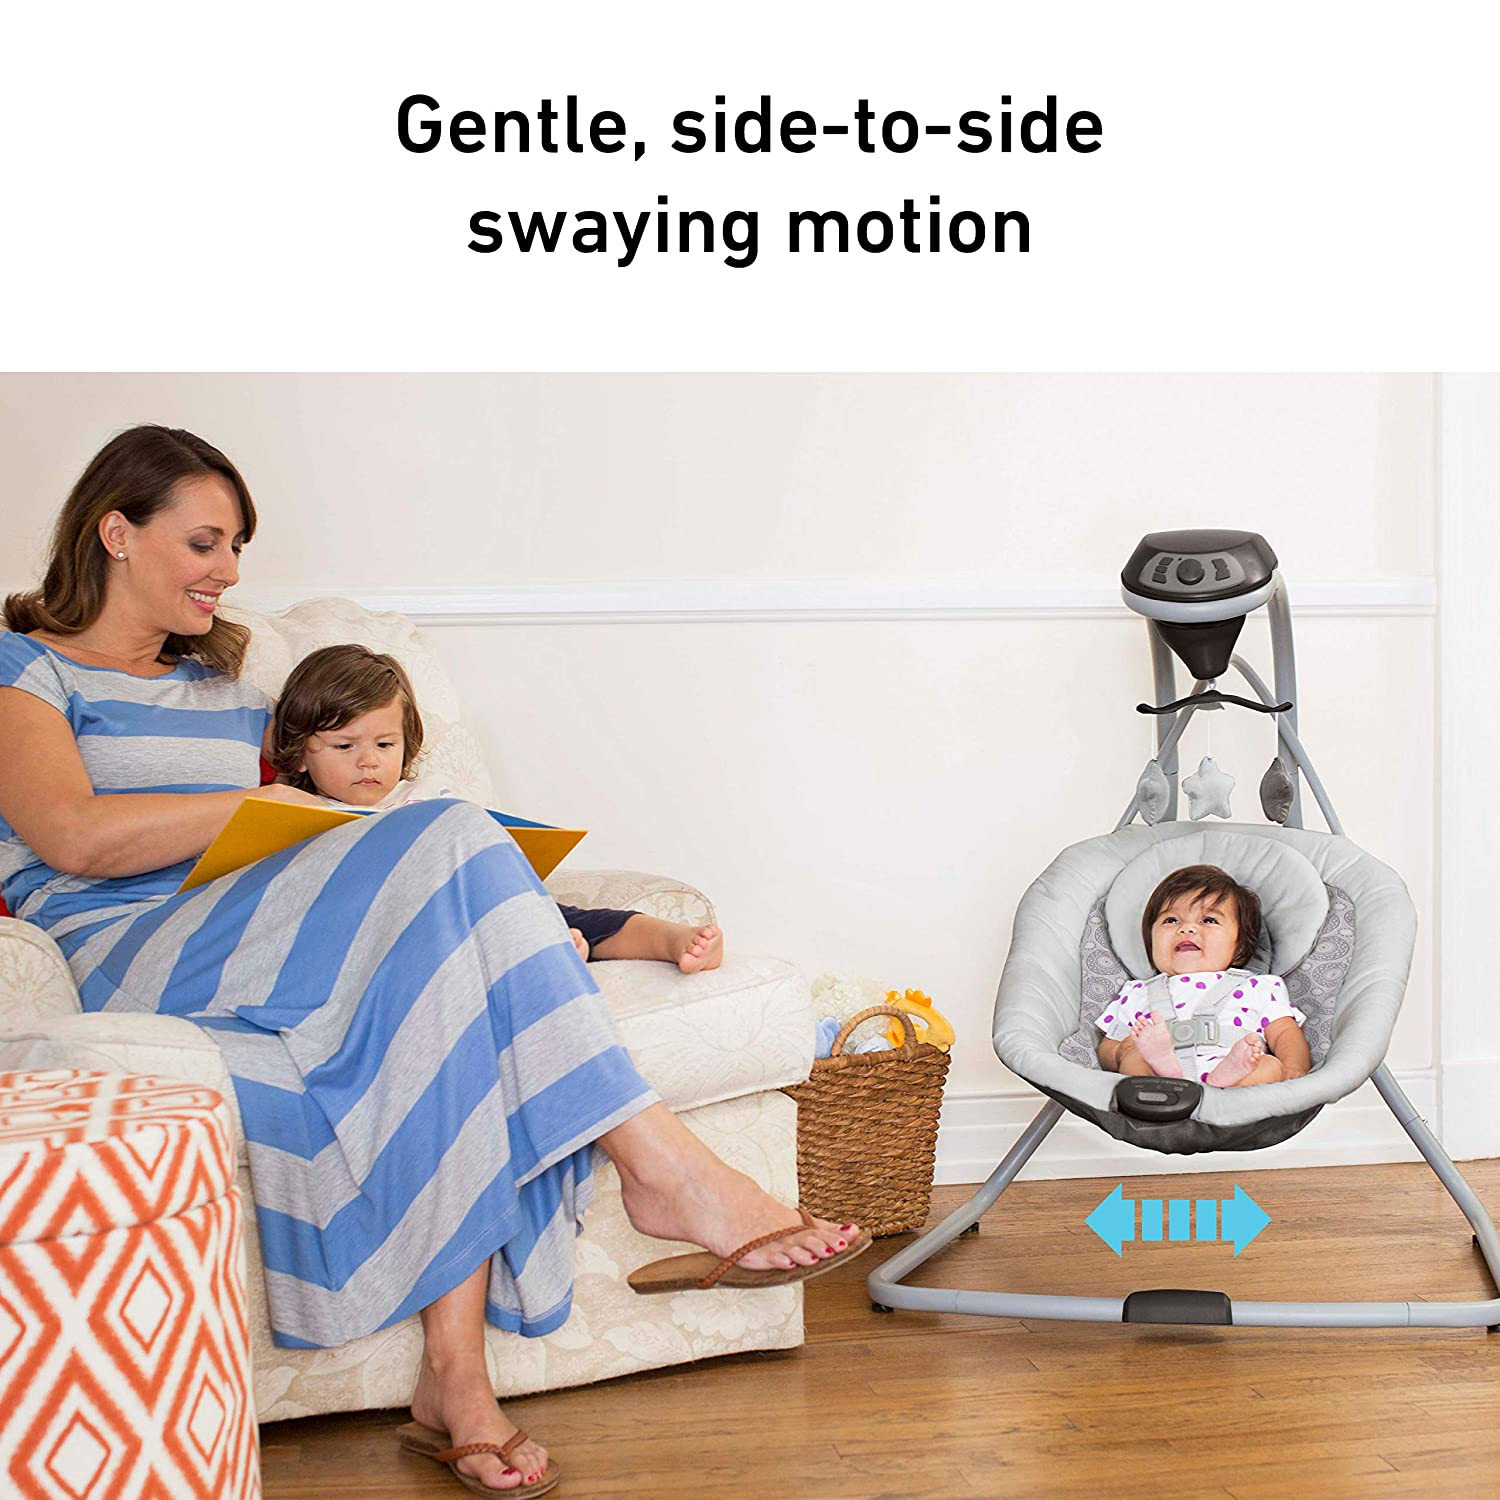 816A 6PCw%2BL. SL1500 The 9 Best Baby Swings for Reflux for 2021 [Review]